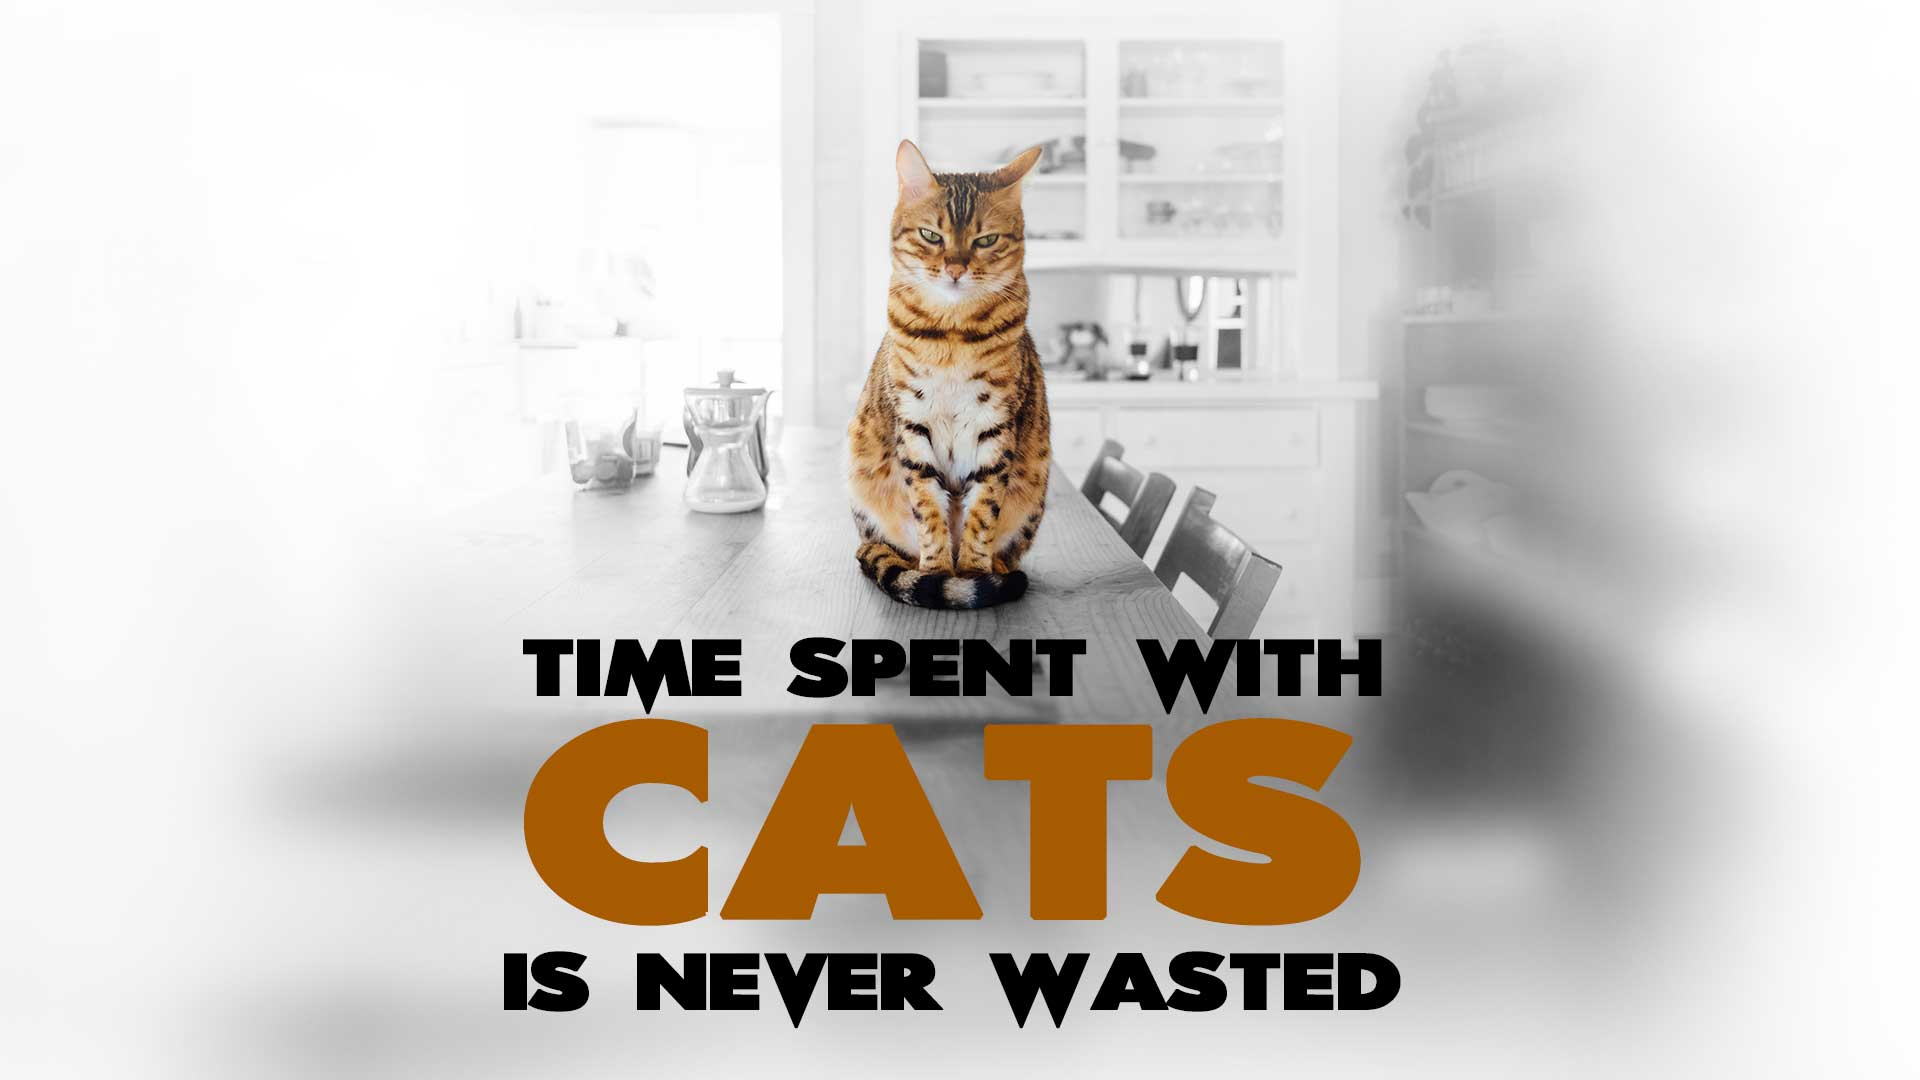 Time-spent-with-cats-is-never-wasted-funny-cat-quote